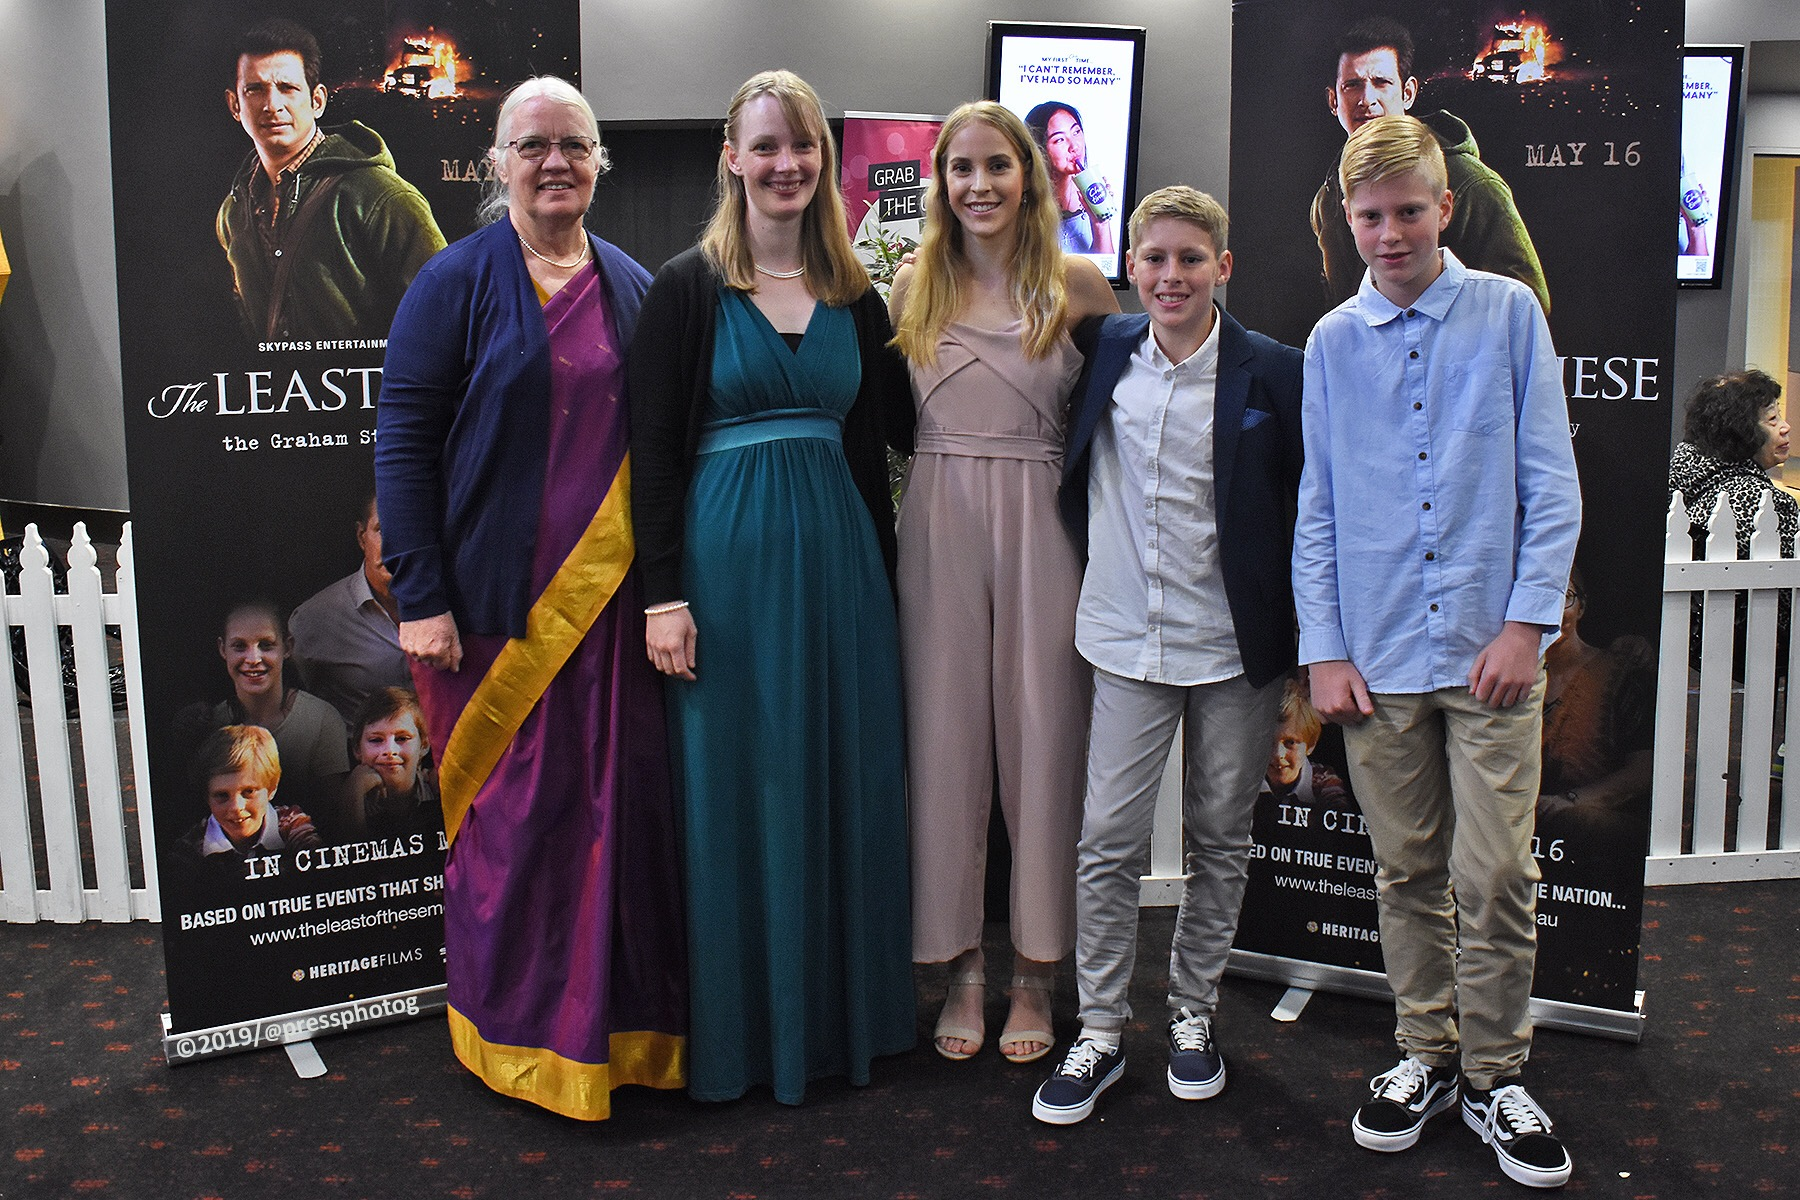 Gladys, Staines, Esther Staines and the Ellis children who portrayed the Staines children in the film